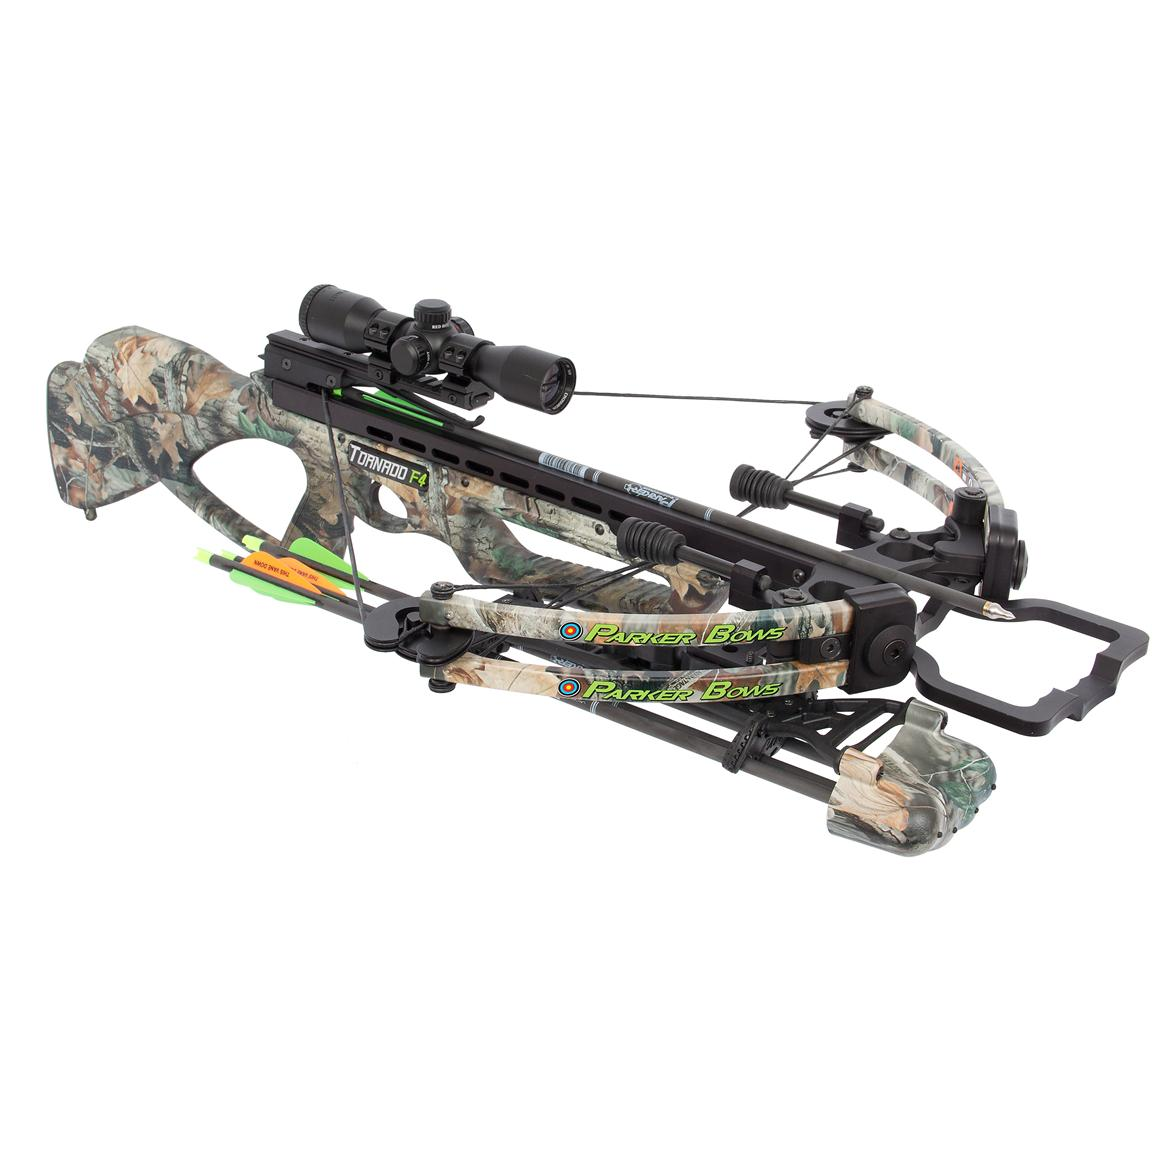 Parker® Tornado F4 165-lb. Crossbow with 1X Illuminated Scope Package